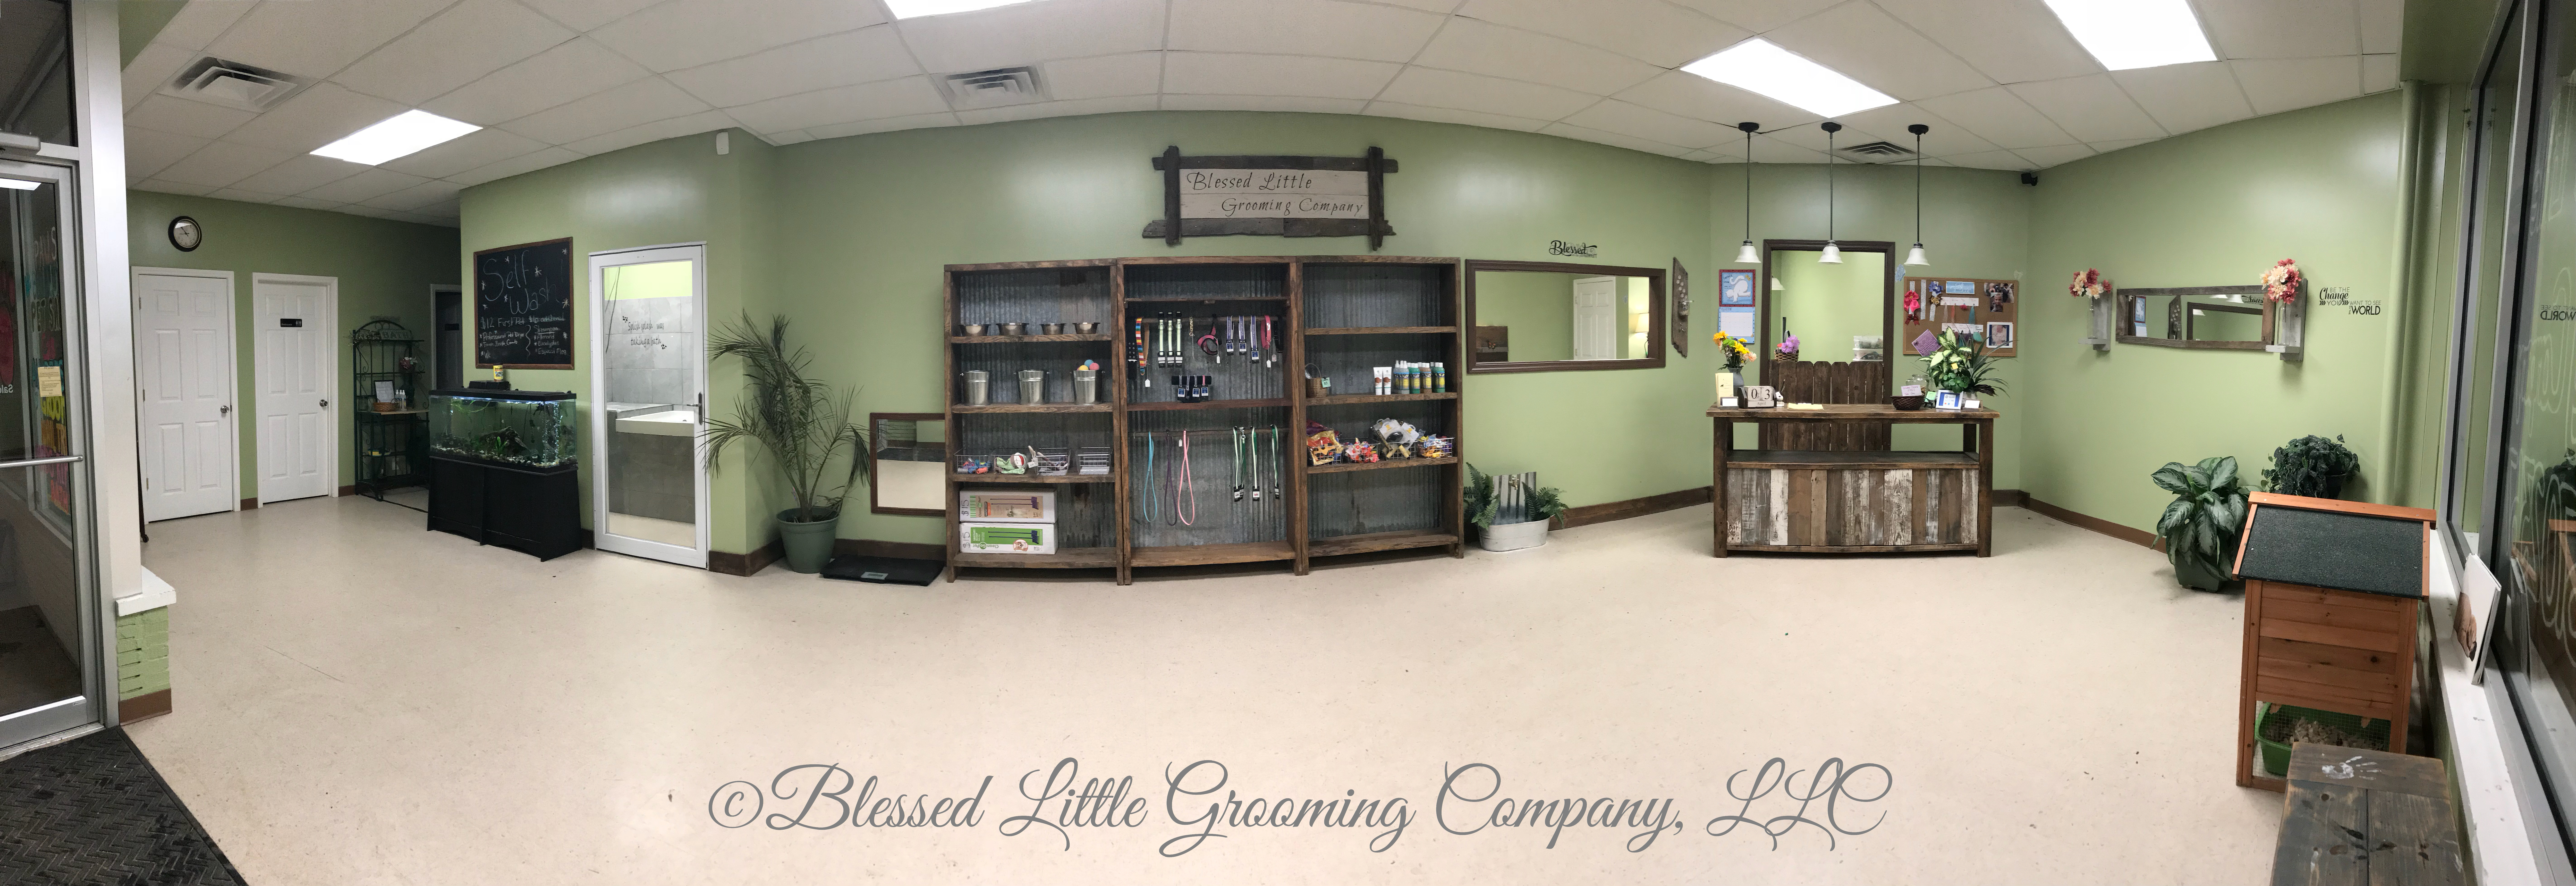 Blessed Little Grooming Company, LLC